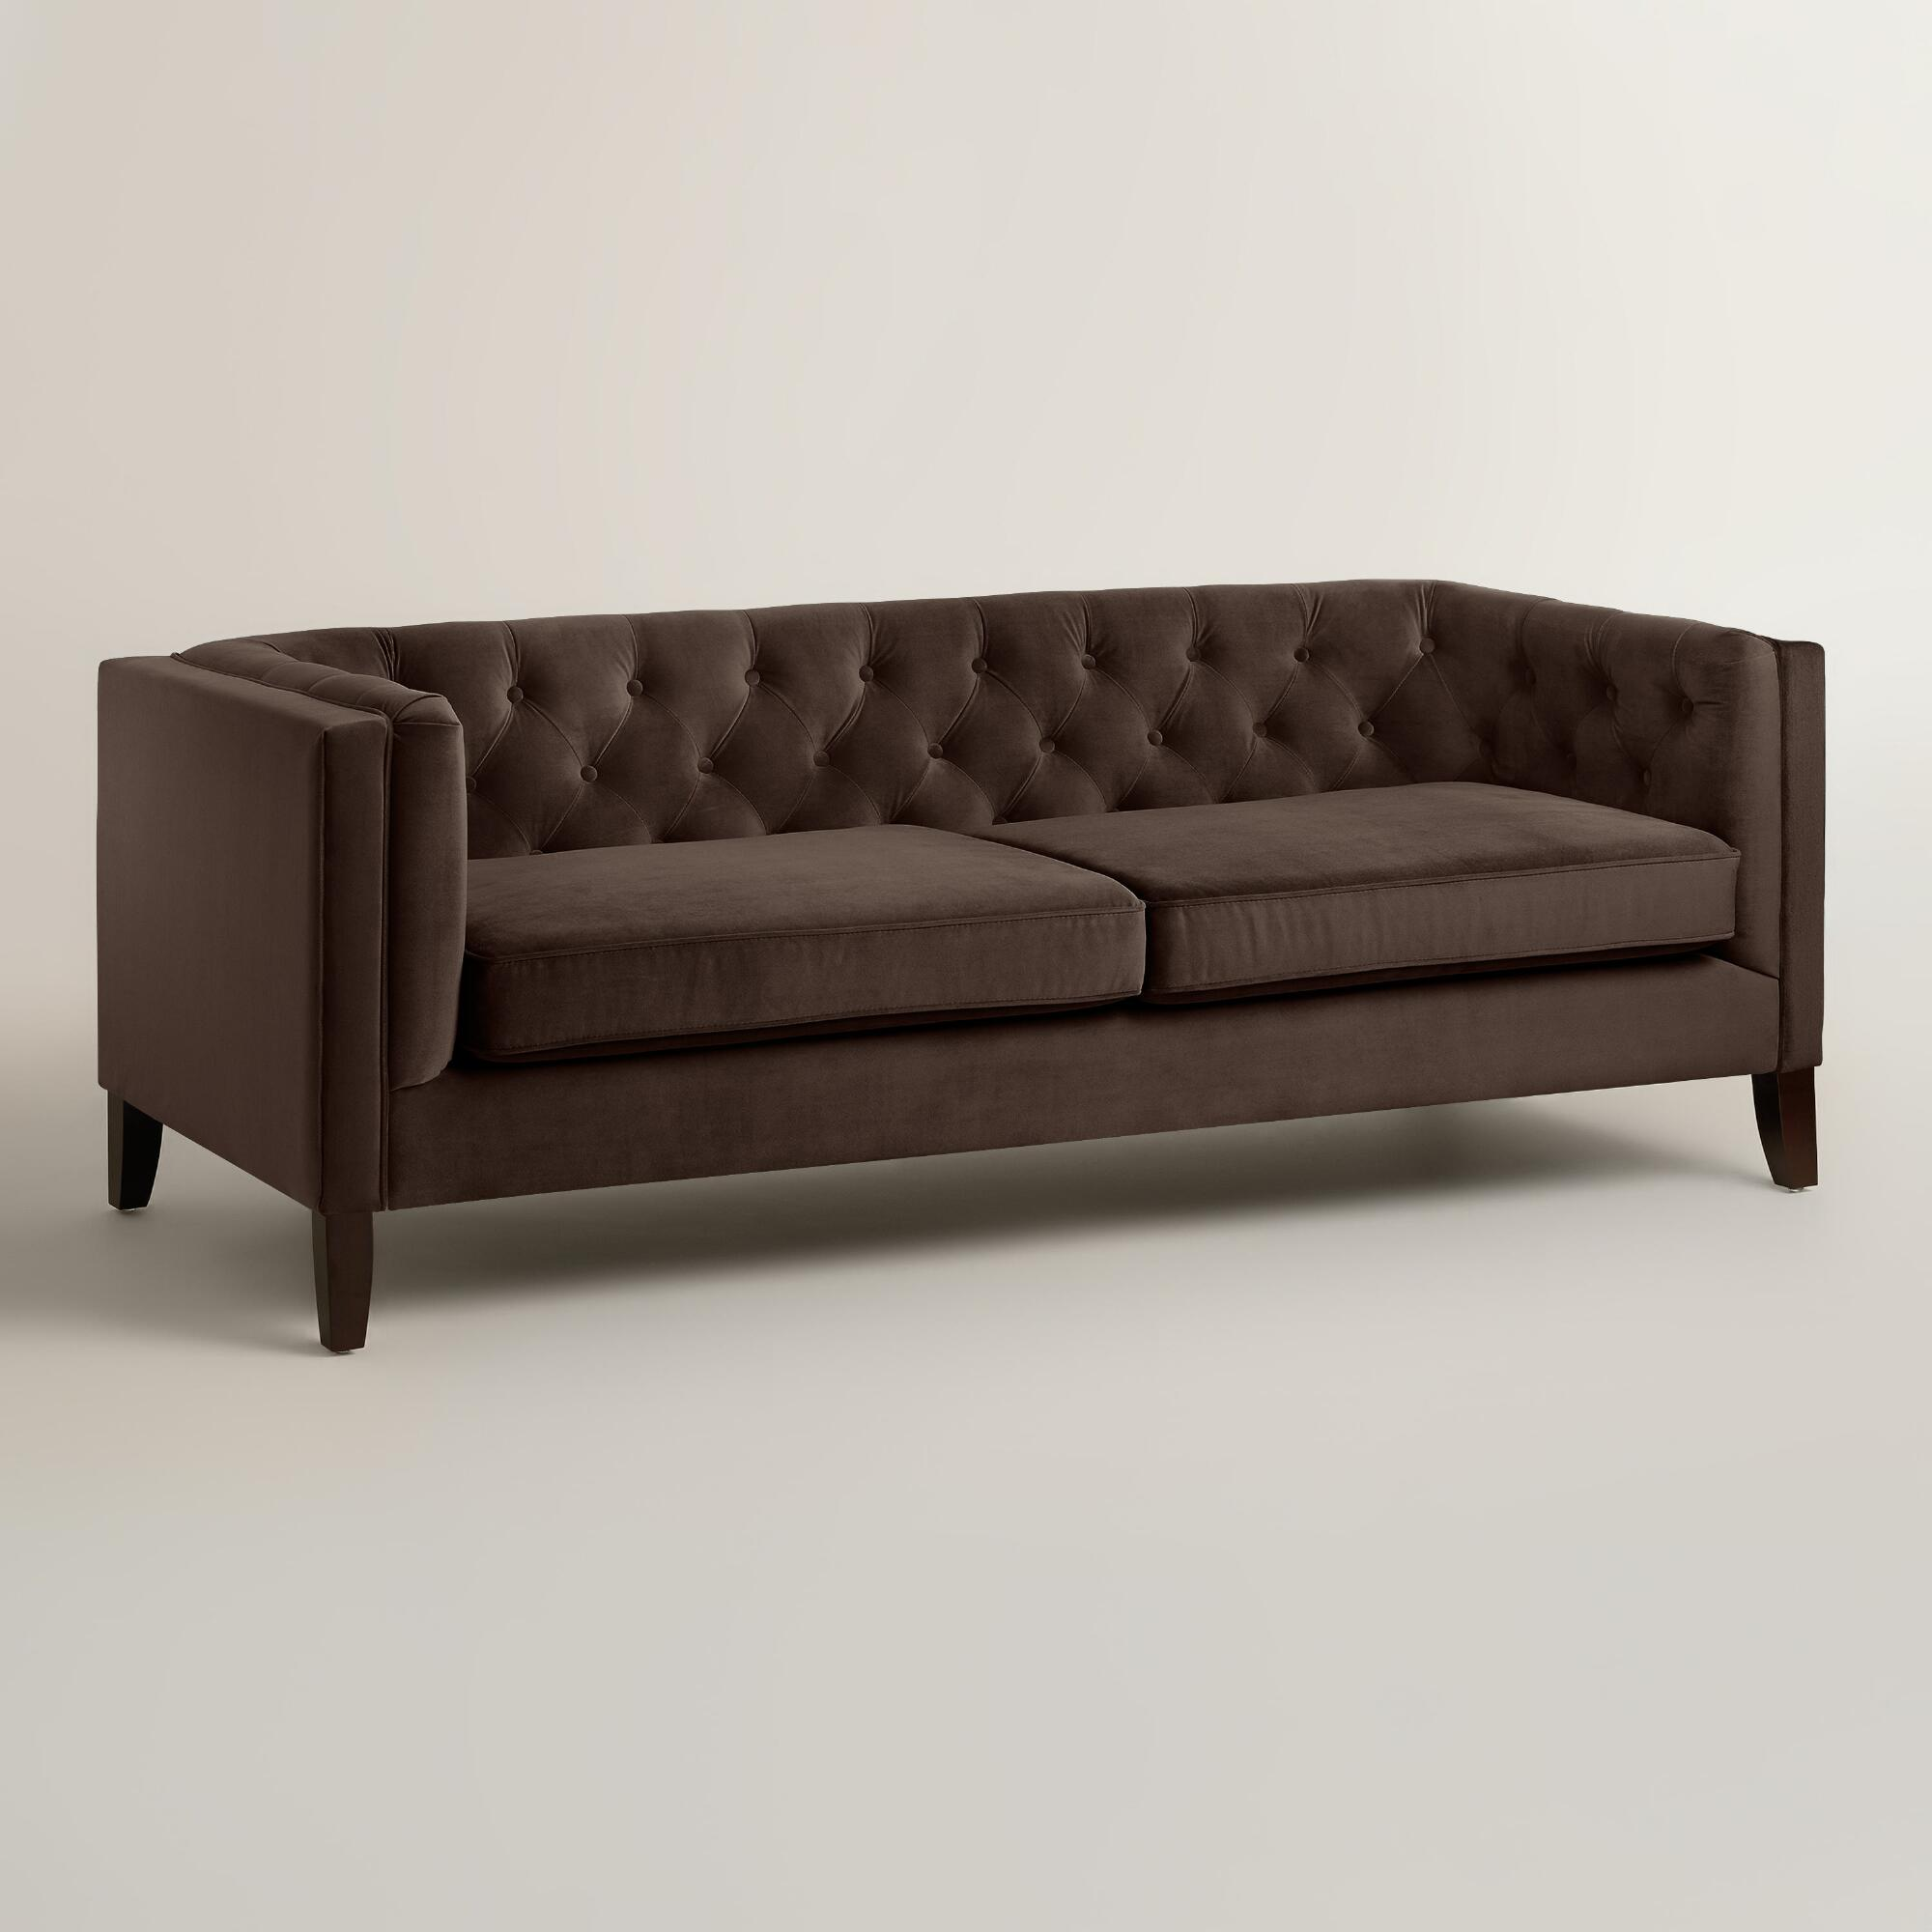 Chocolate brown velvet kendall sofa world market Chocolate loveseat